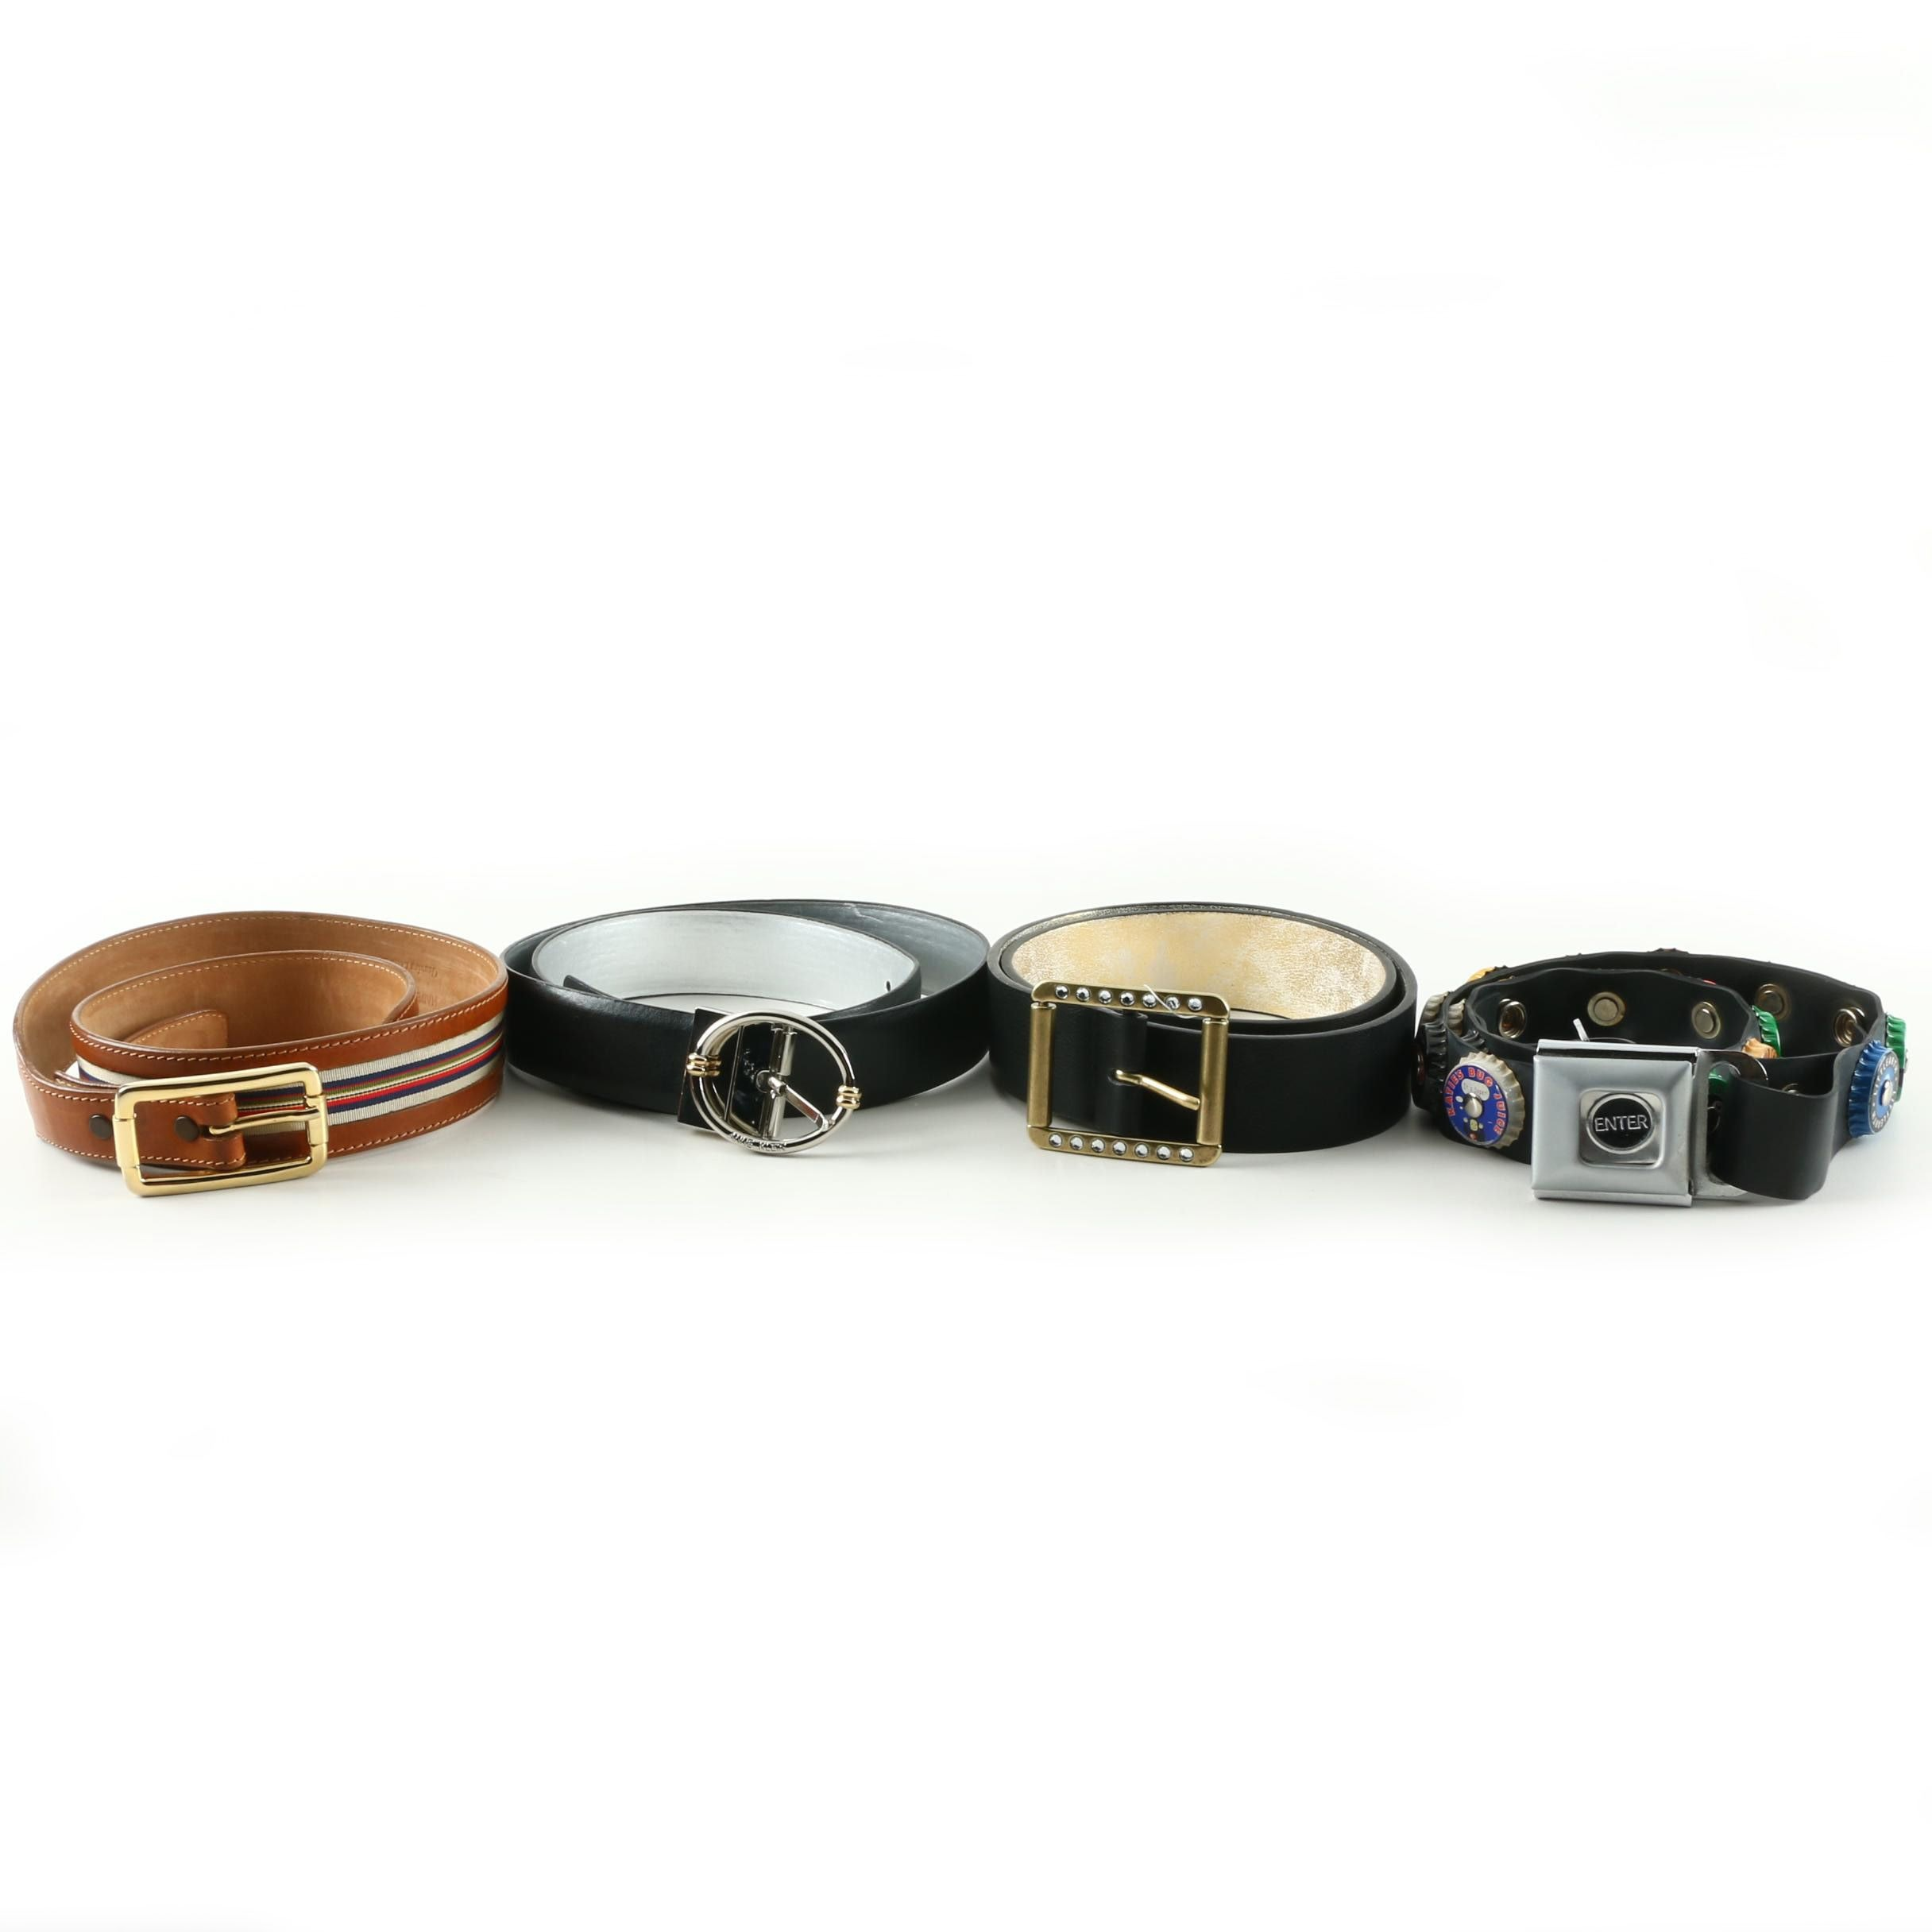 Women's Belts Including Betsey Johnson and Anne Klein